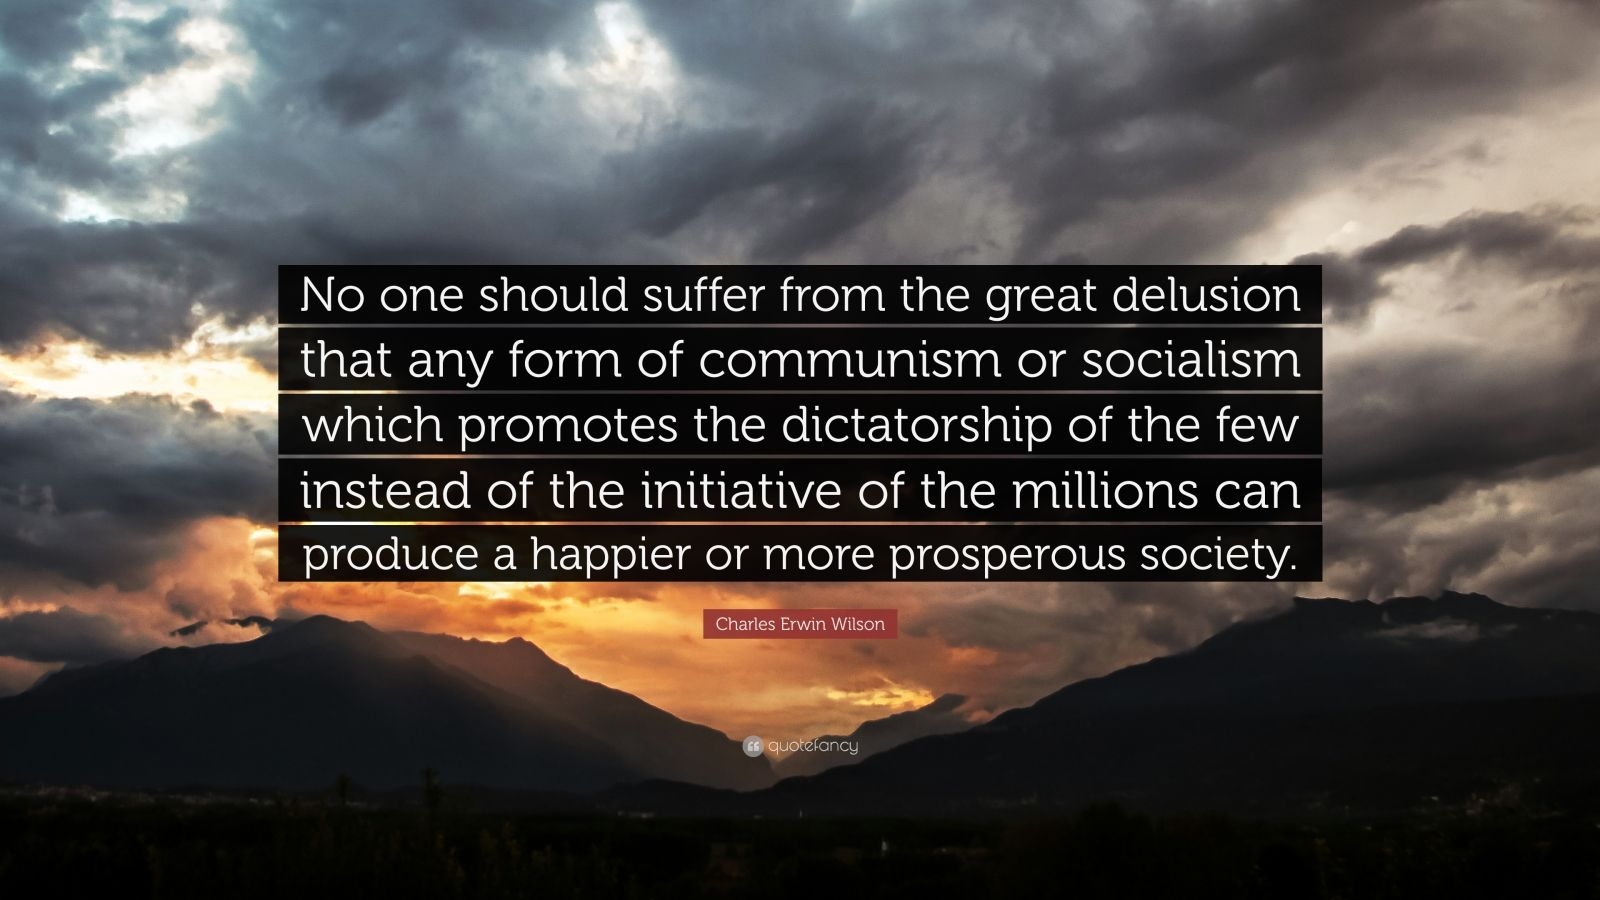 "Charles Erwin Wilson Quote: ""No one should suffer from the great delusion that any form of communism or socialism which promotes the dictatorship of the few instead of the initiative of the millions can produce a happier or more prosperous society."""